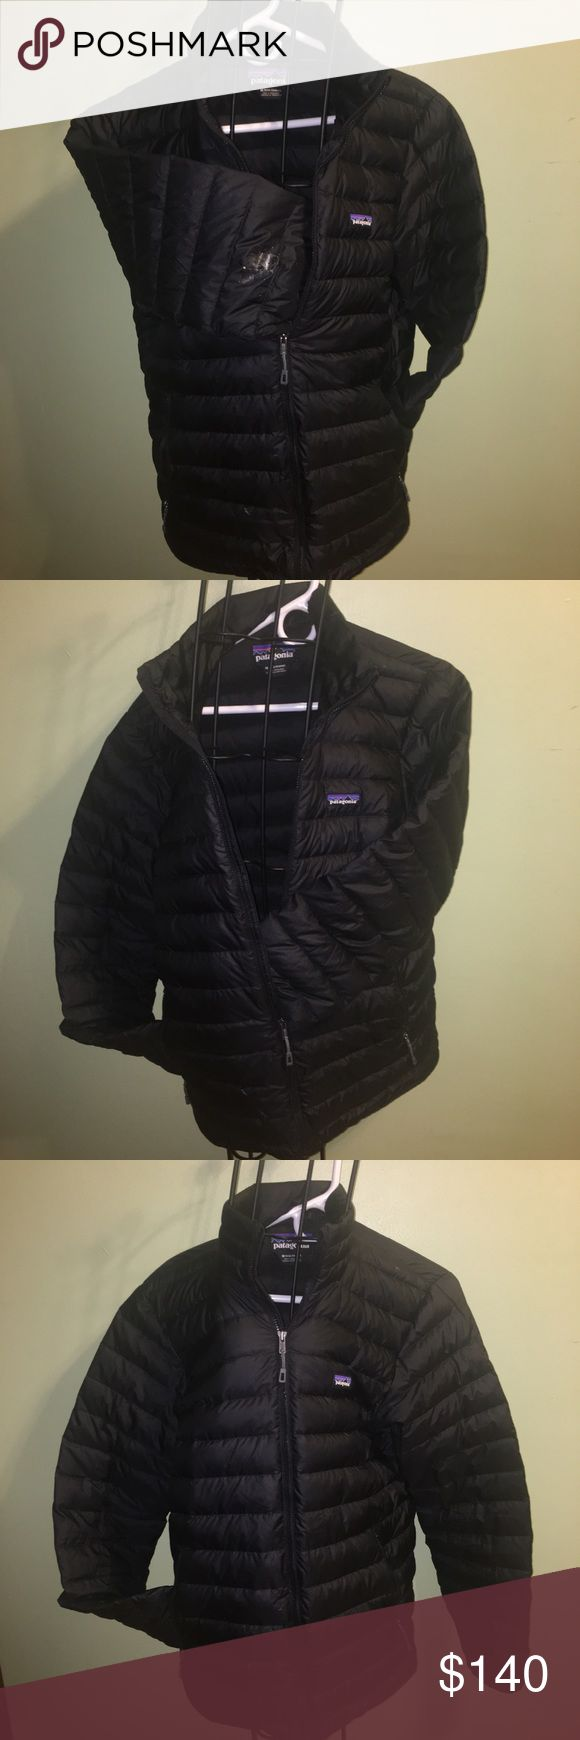 Patagonia Down Sweater Jacket with Flaws Sz M PLEASE READ before considering purchase. This jacket has only been worn a few times before the right arm was ripped (see photos of 1. rip and 2. pen size hole on the right arm. I have cover the hole with tap to prevent the feathers from coming out. Can be patched or worn as-is. Jacket is being sold with consideration of the rip and possible repairs. Down patch is around 4-9 bucks. Packable Down Sweater is lightweight and windproof with 100%…